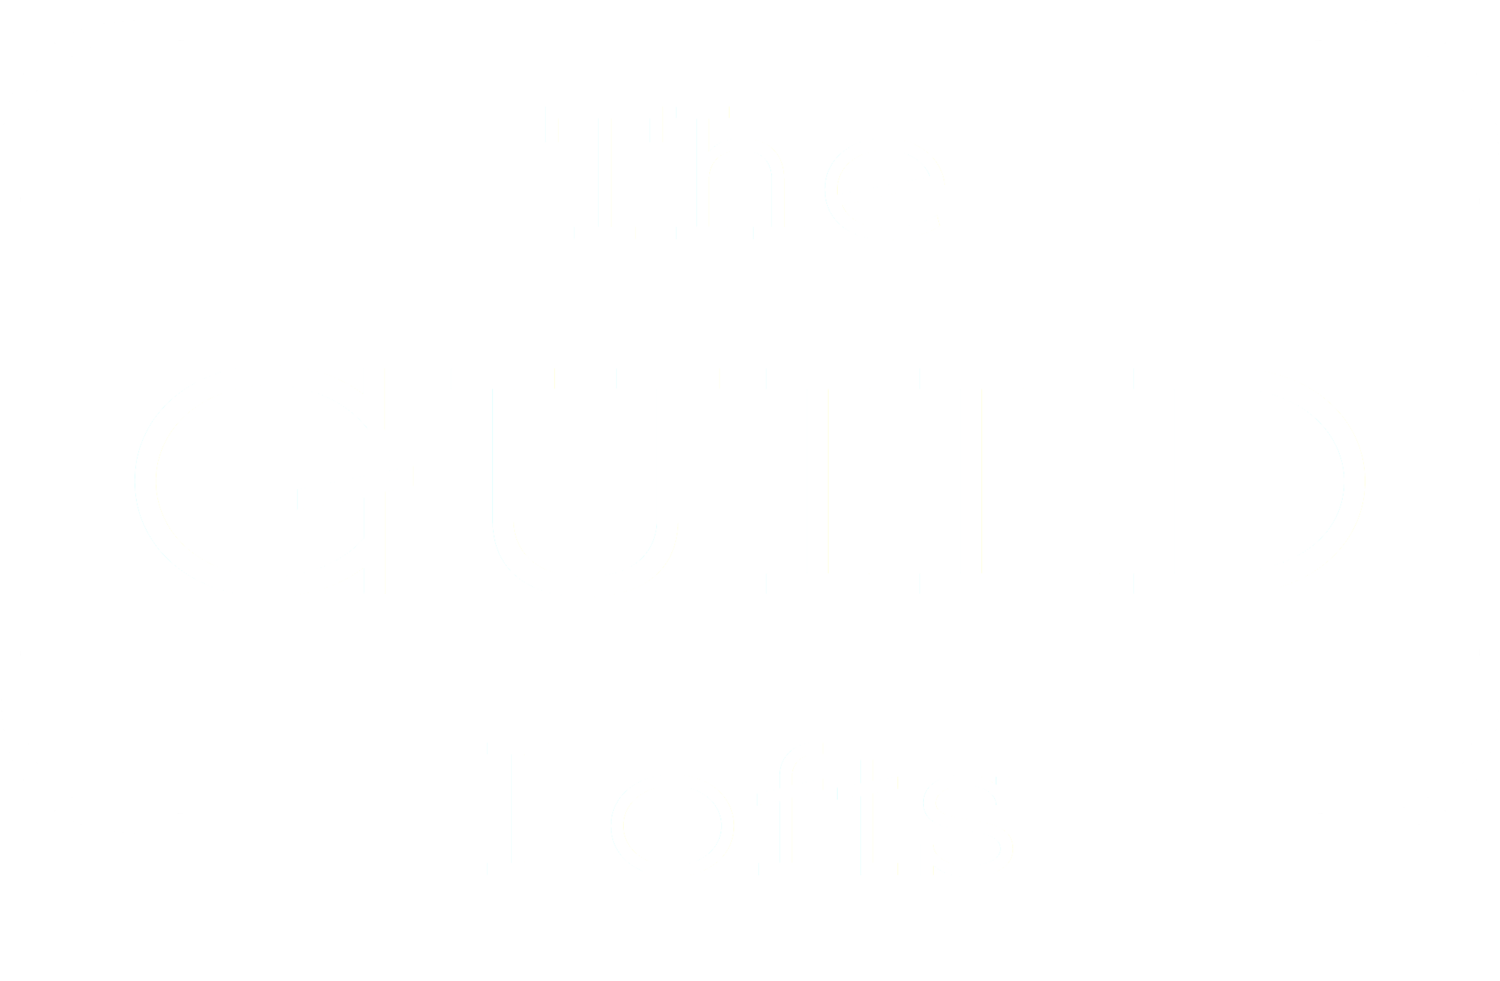 THE GUILD LOFTS